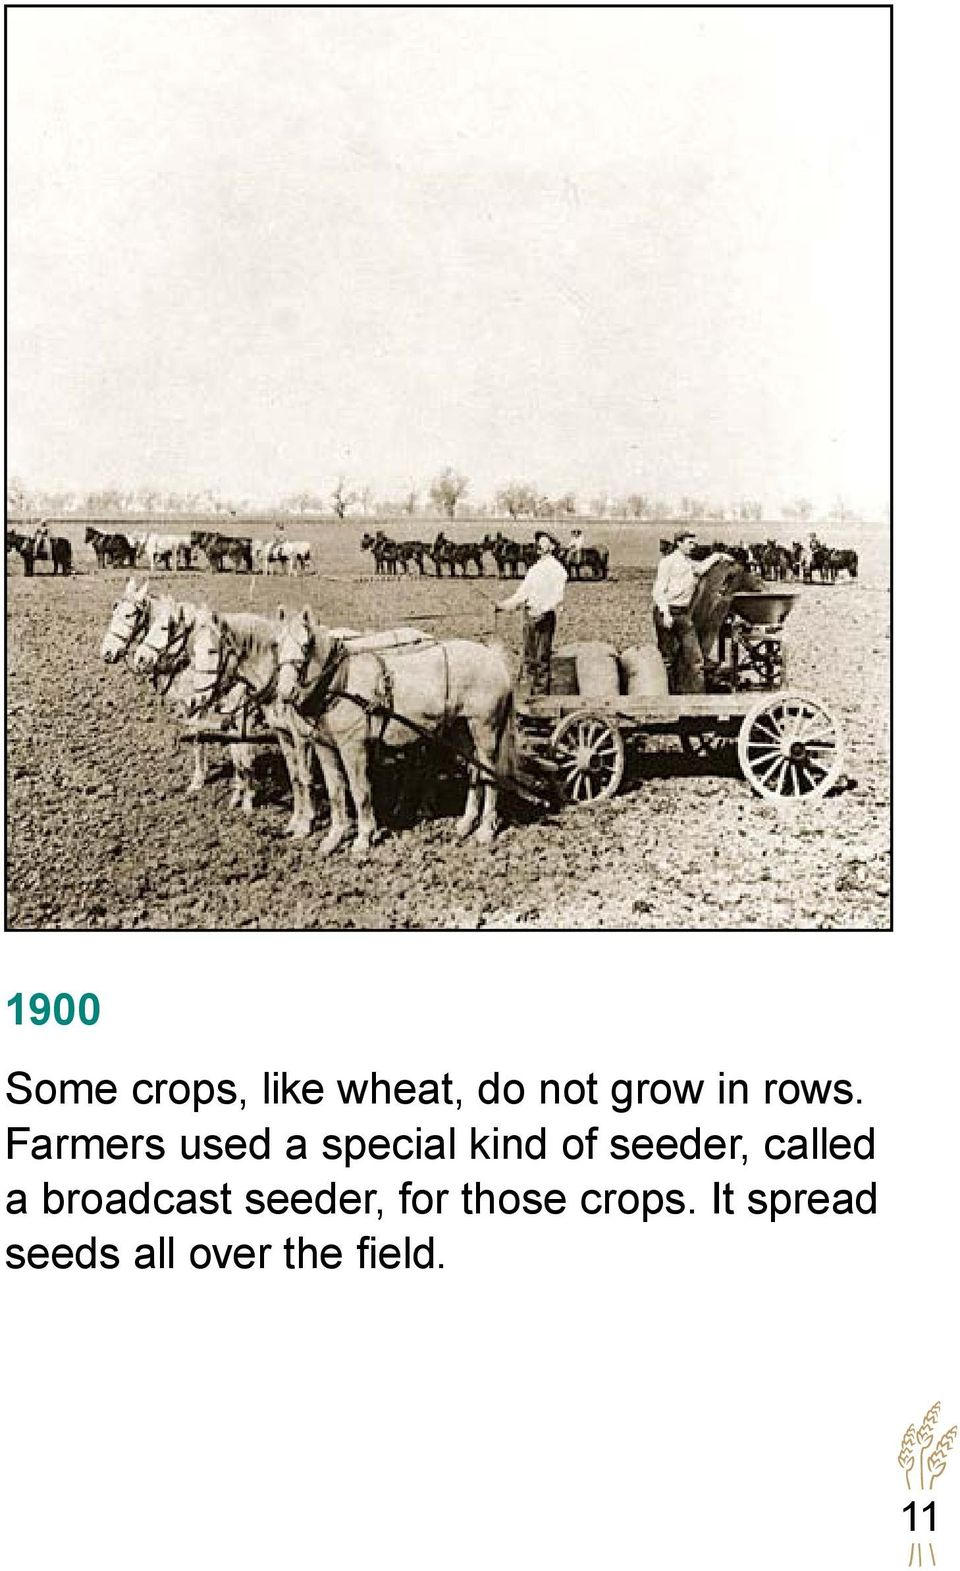 Farmers used a special kind of seeder,